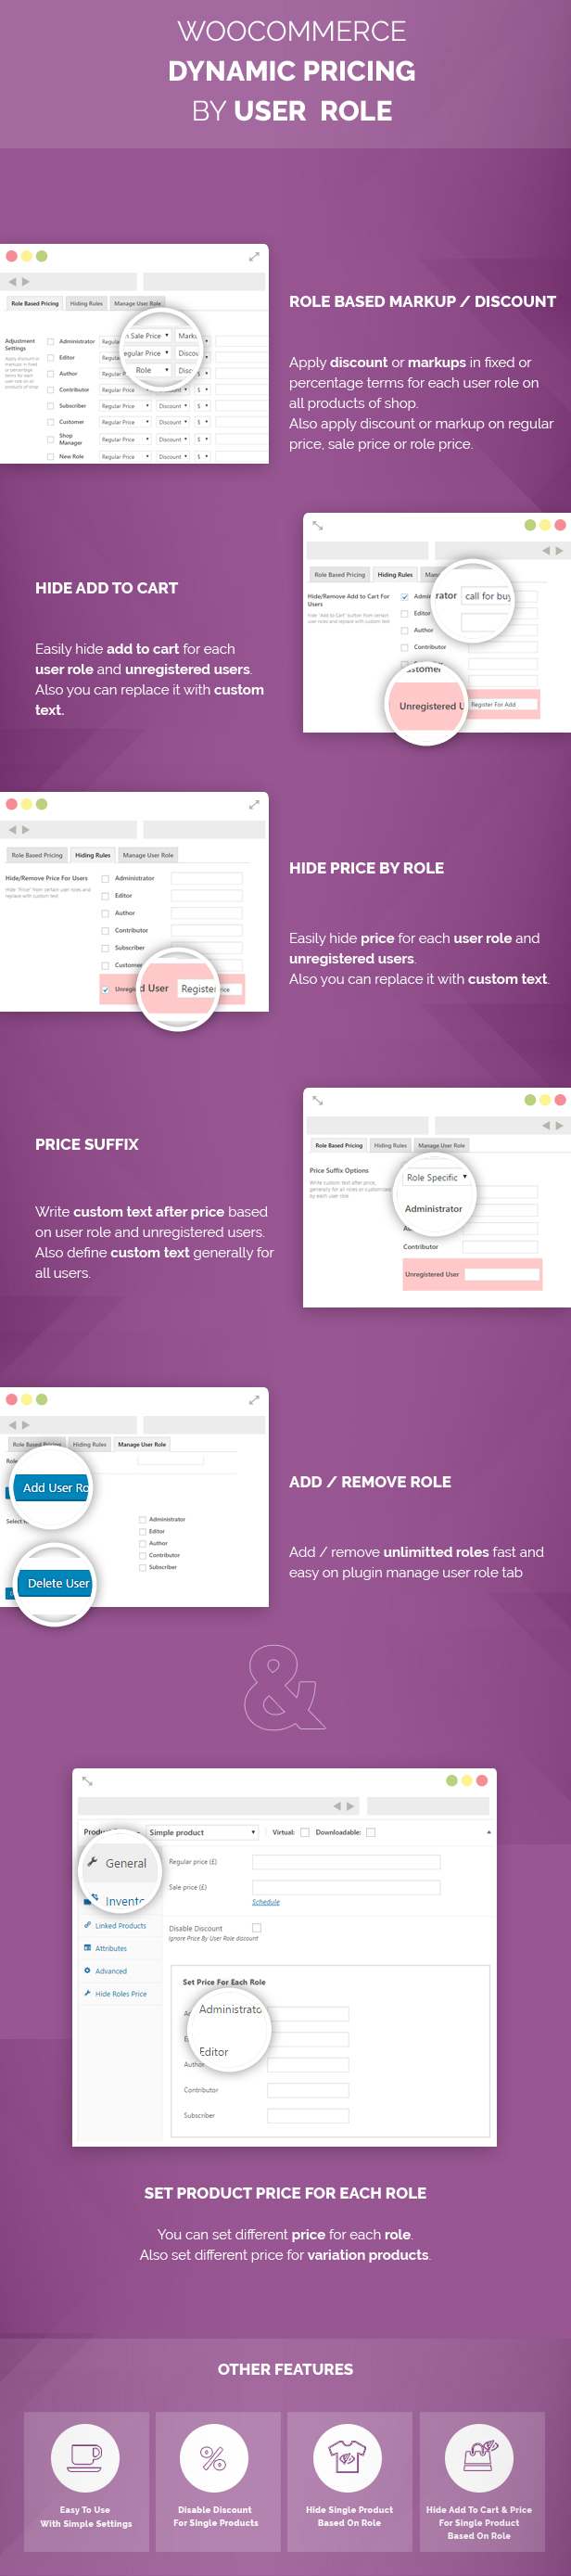 Woocommerce Dynamic Pricing By User Role - 1